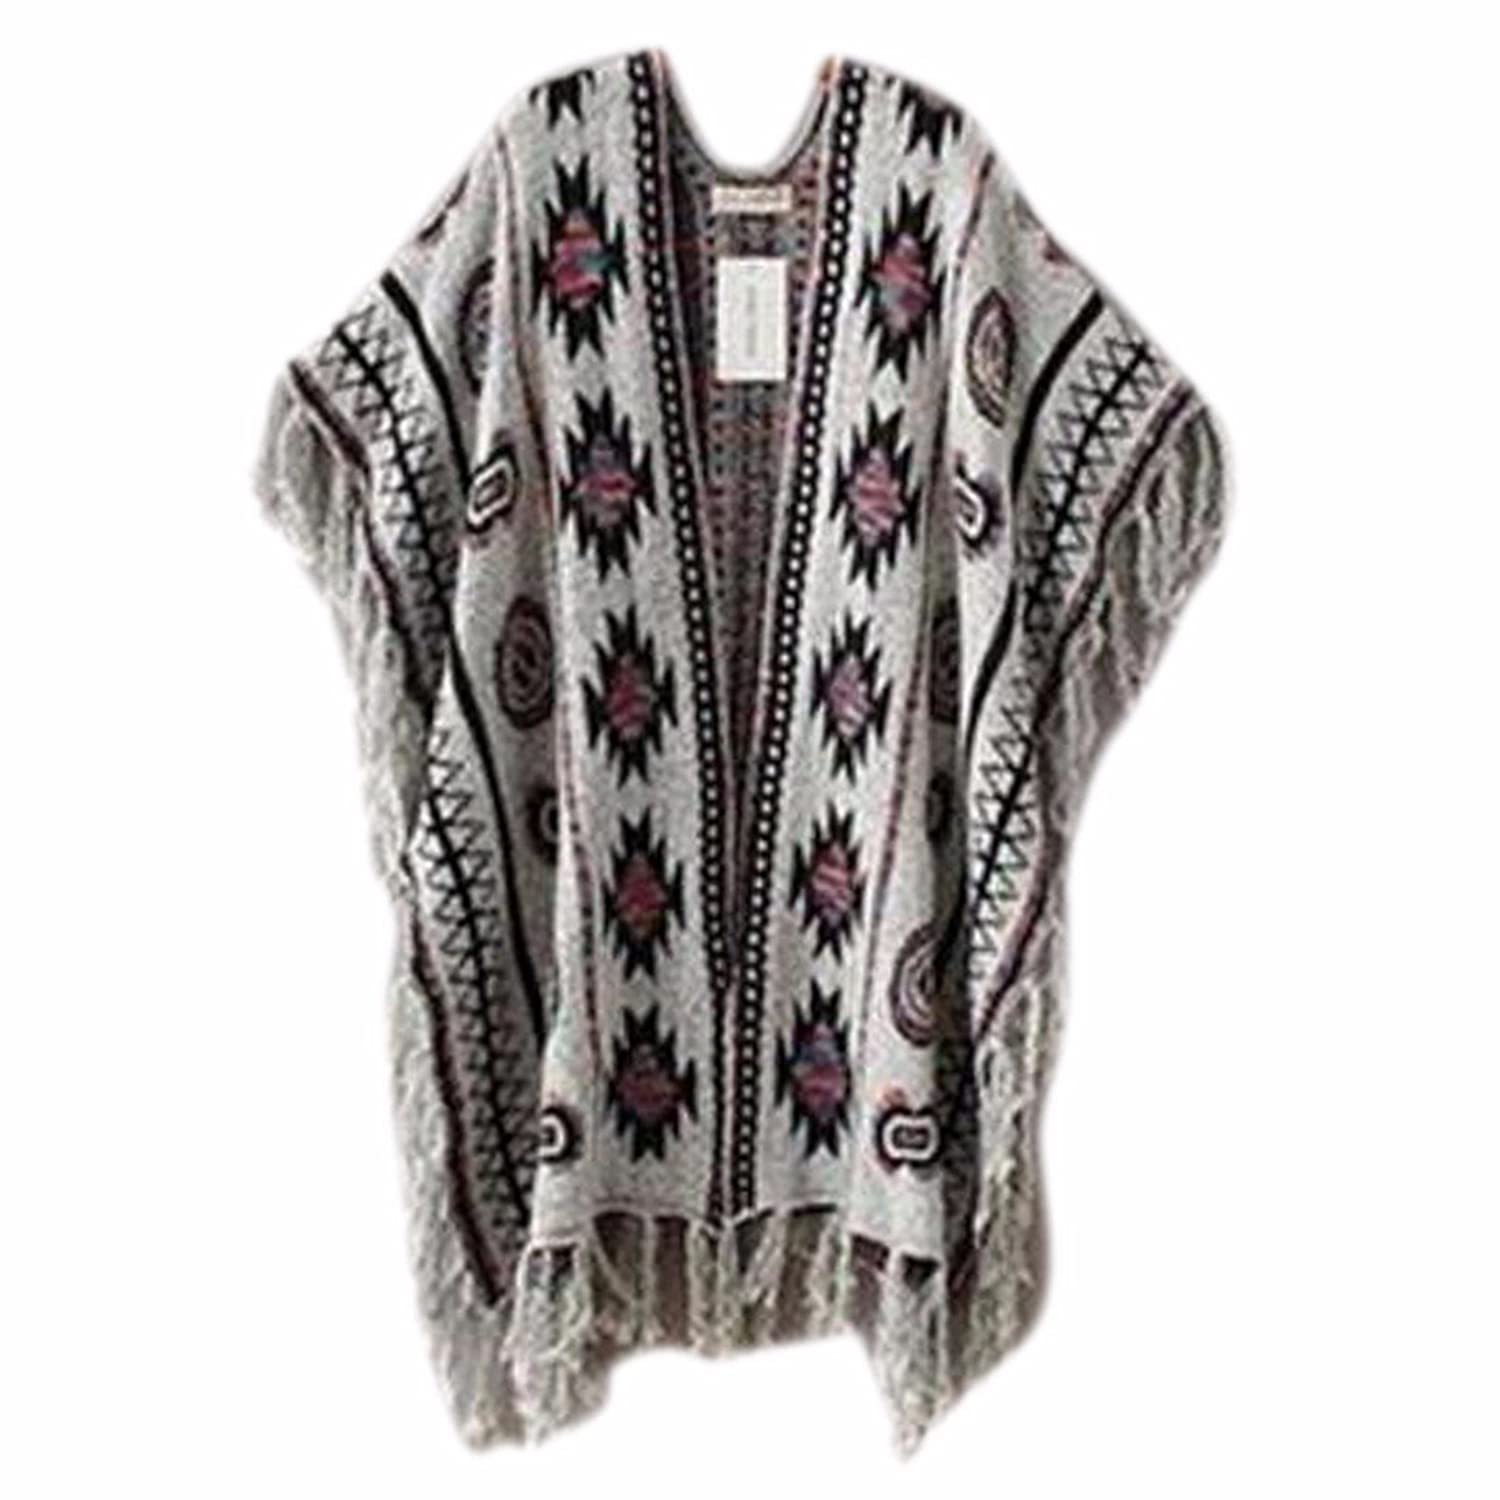 QIYUN.Z Women's Vintage Style Open Front Cardigans Ladies Shawl with Tassel